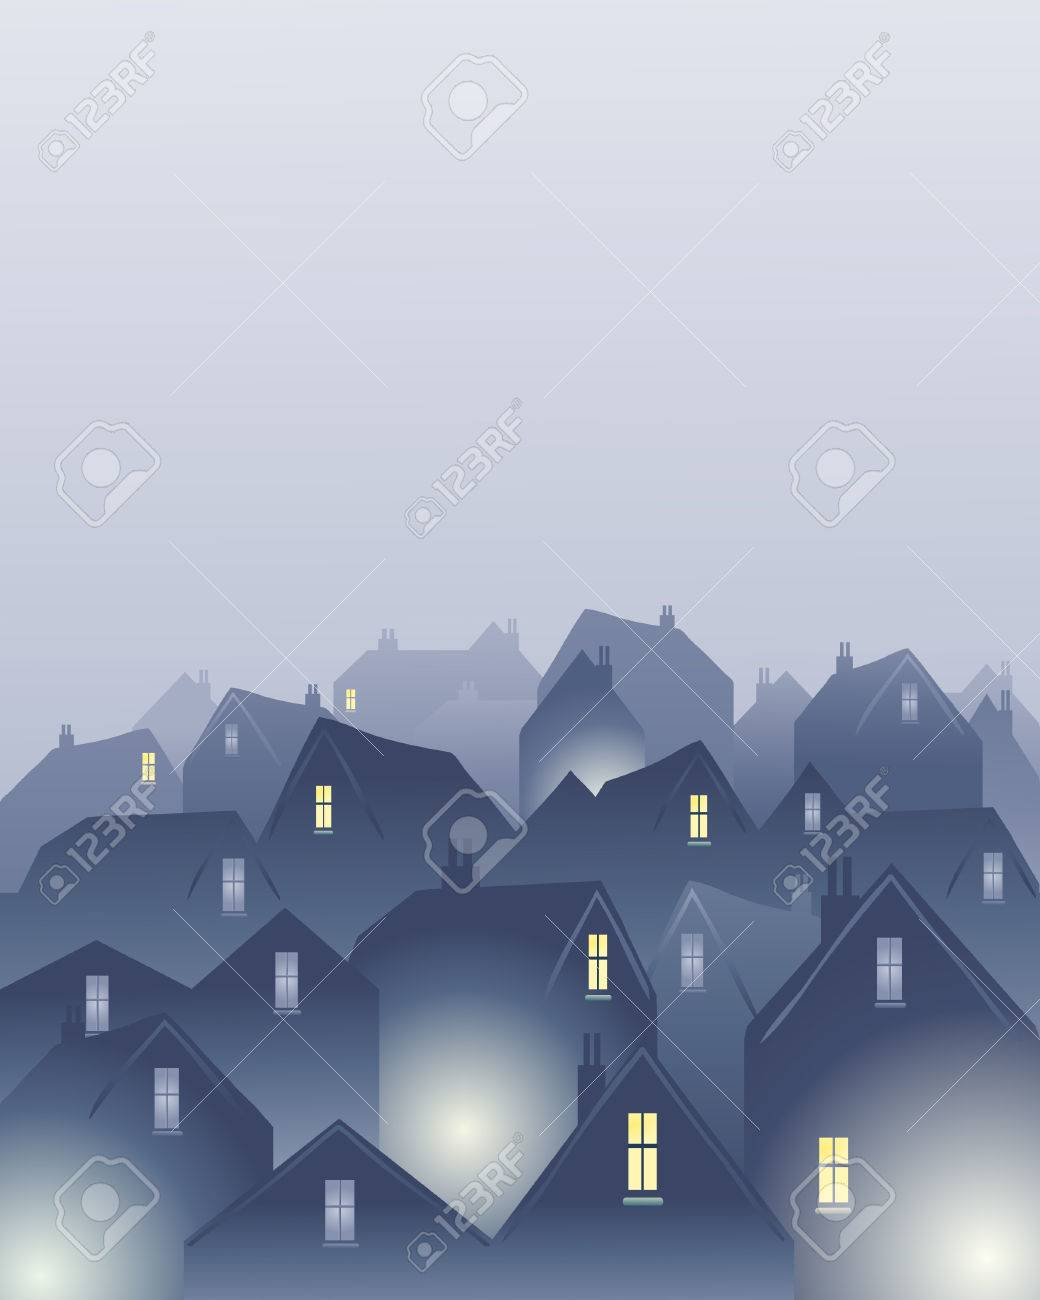 an illustration of rooftops in a city on a misty day Stock Vector - 8543168